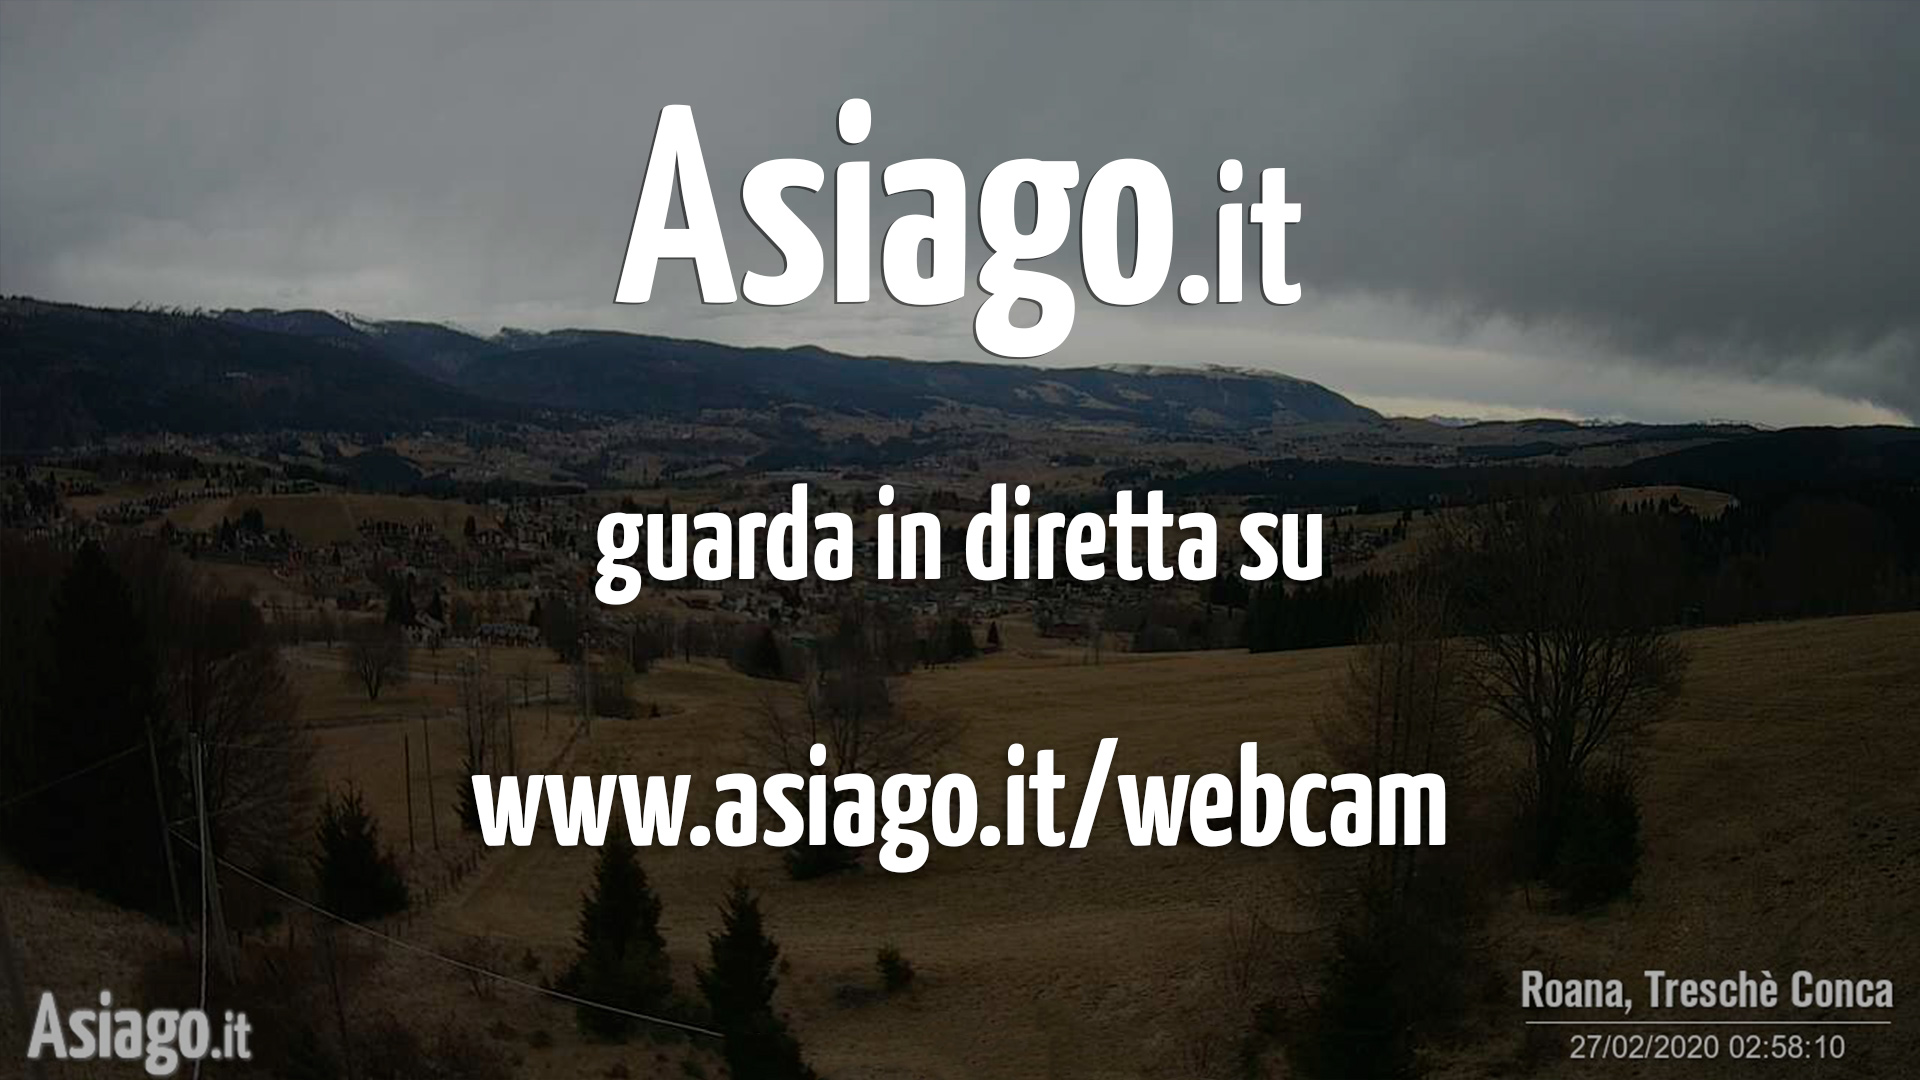 Webcam live di Asiago.It dal Ristorante La Quinta